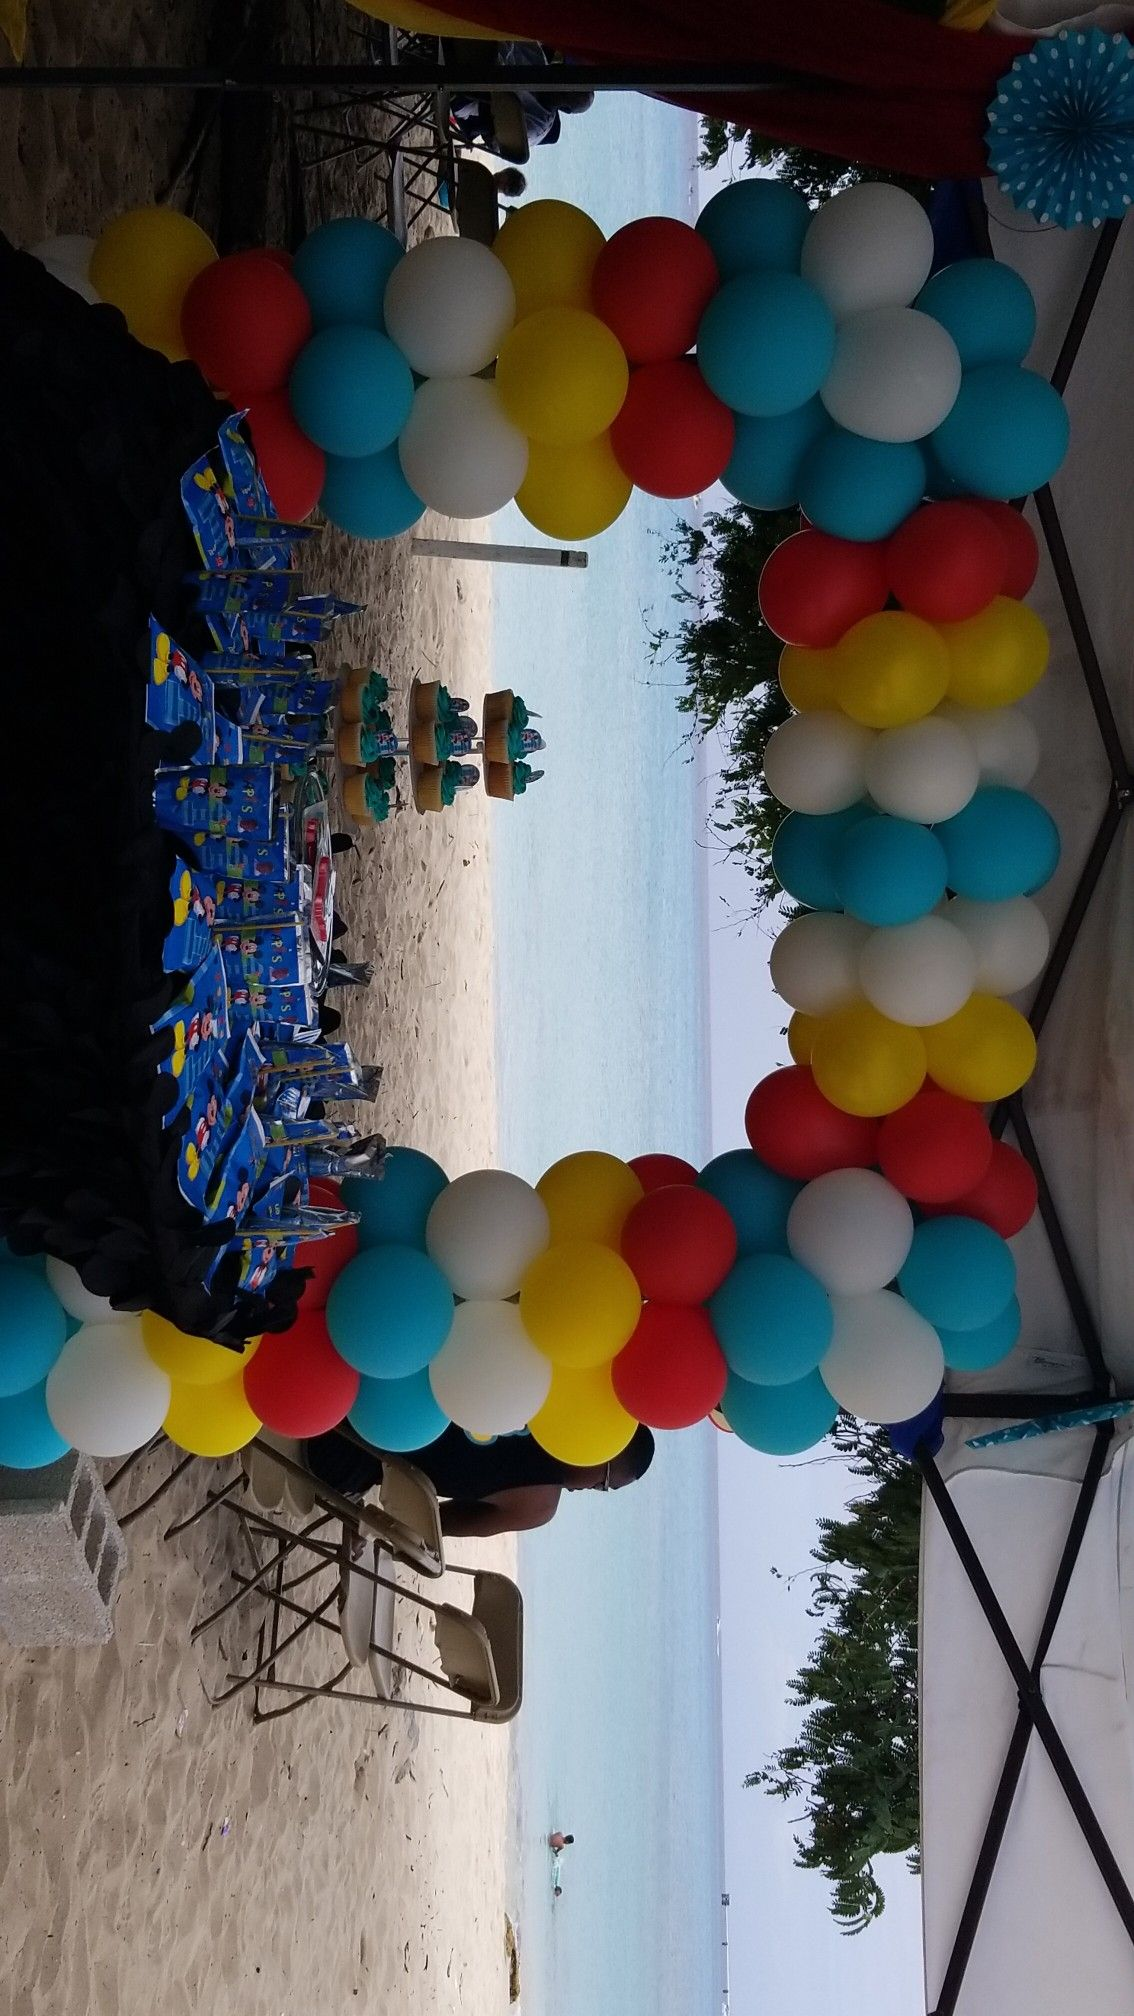 Mickey Mouse Theme Beach Party Balloon Frame With Turquoise Red